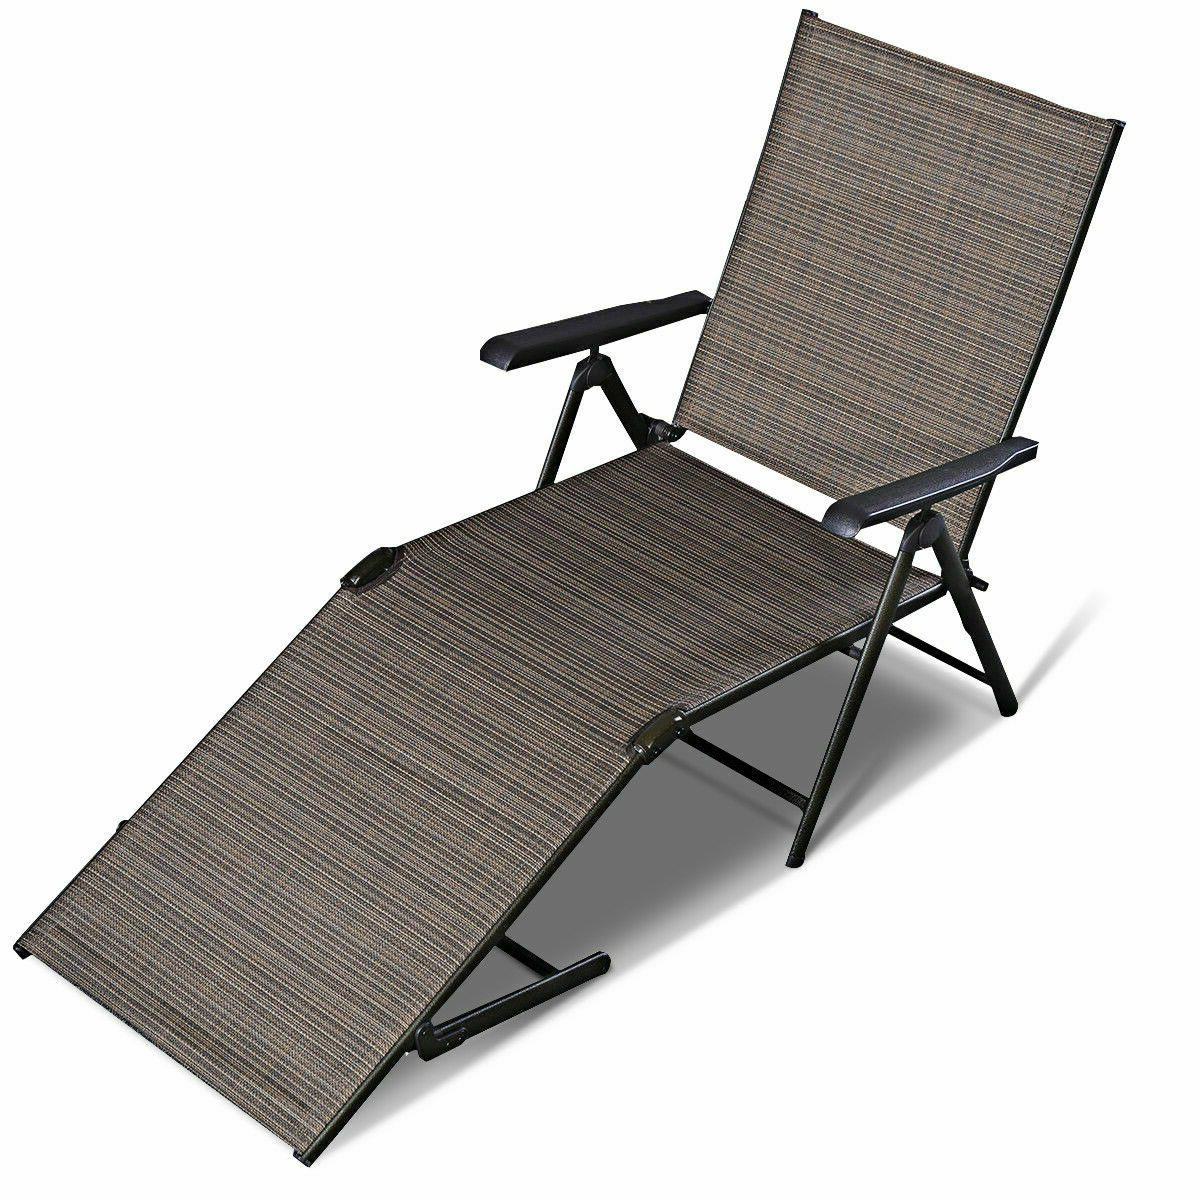 Wicker Chaise Back Adjustable Patio Lounge Chairs With Wheels With Latest Citycw Adjustable Pool Chaise Lounge Chair Recliner Textilene Outdoor Patio Furniture (View 15 of 25)